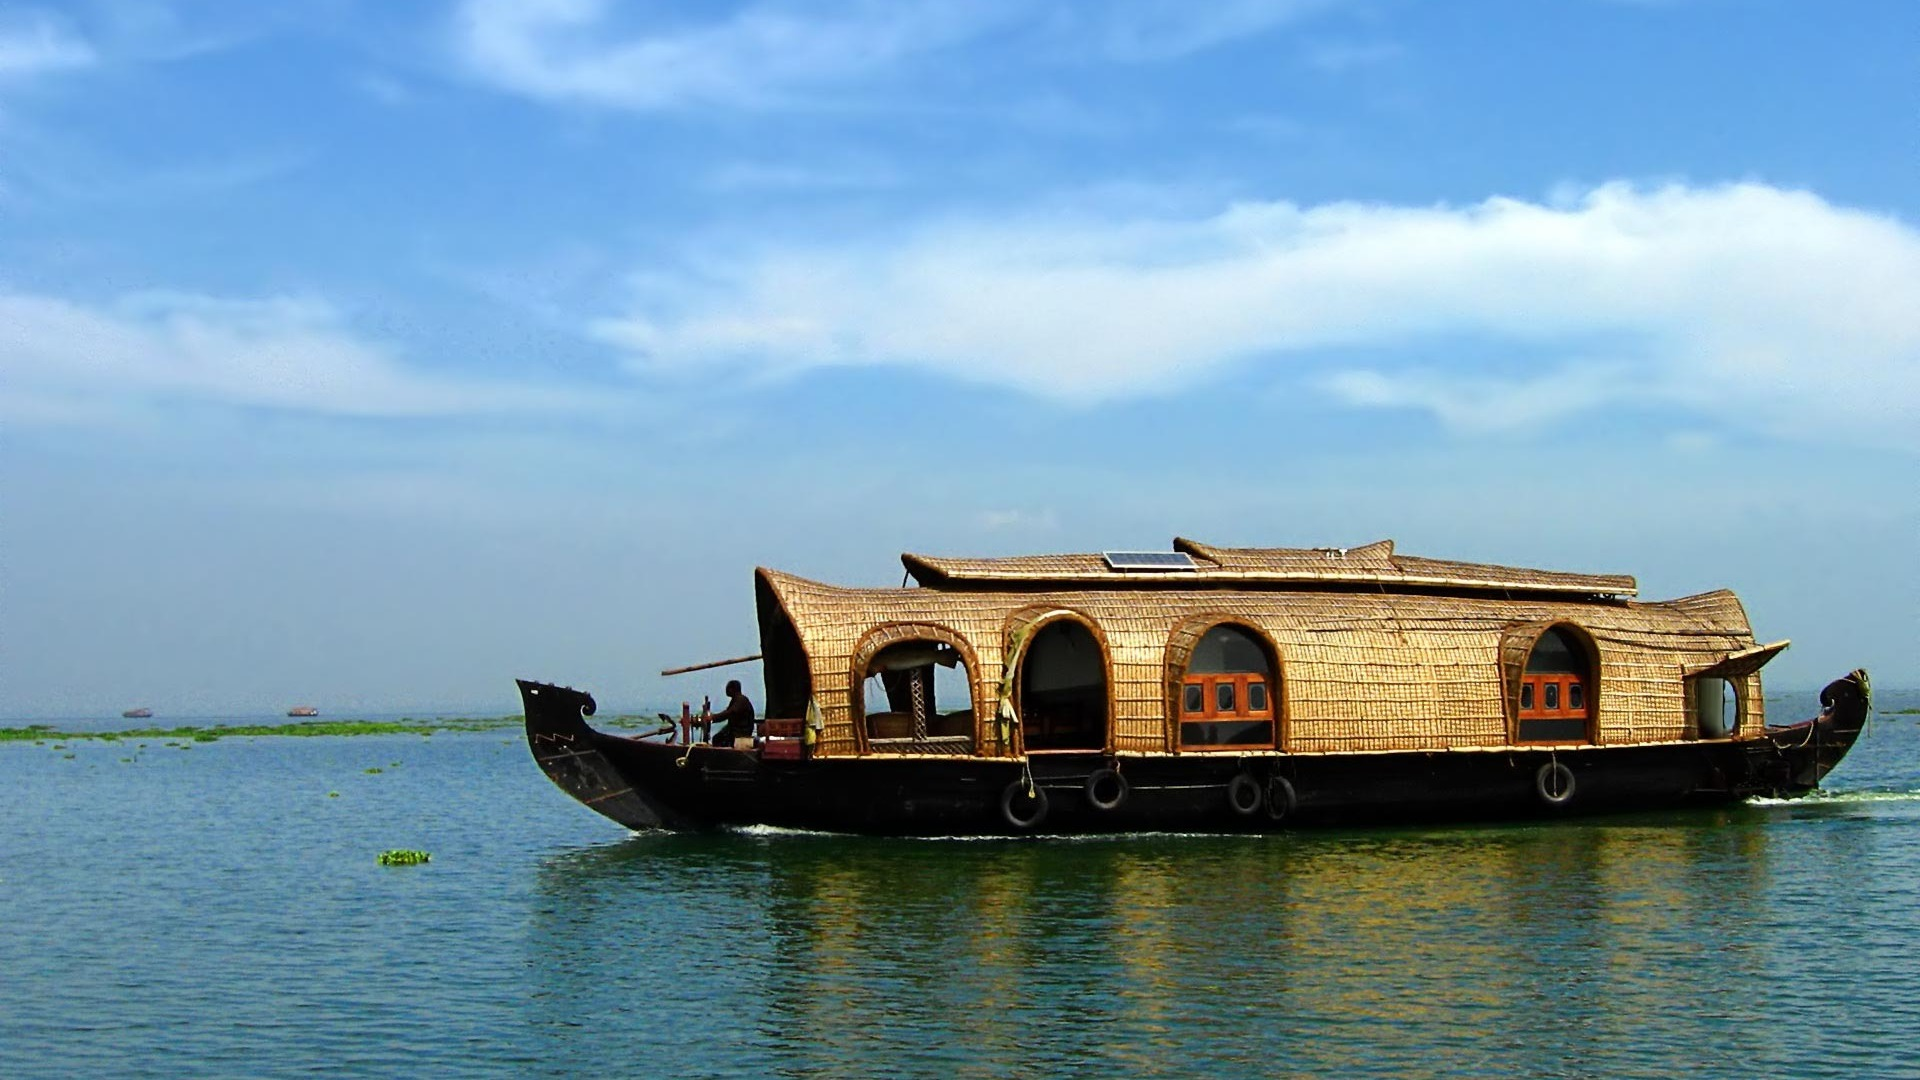 kerala houseboats the houseboats of kerala hd wallpapers Car Pictures 1920x1080